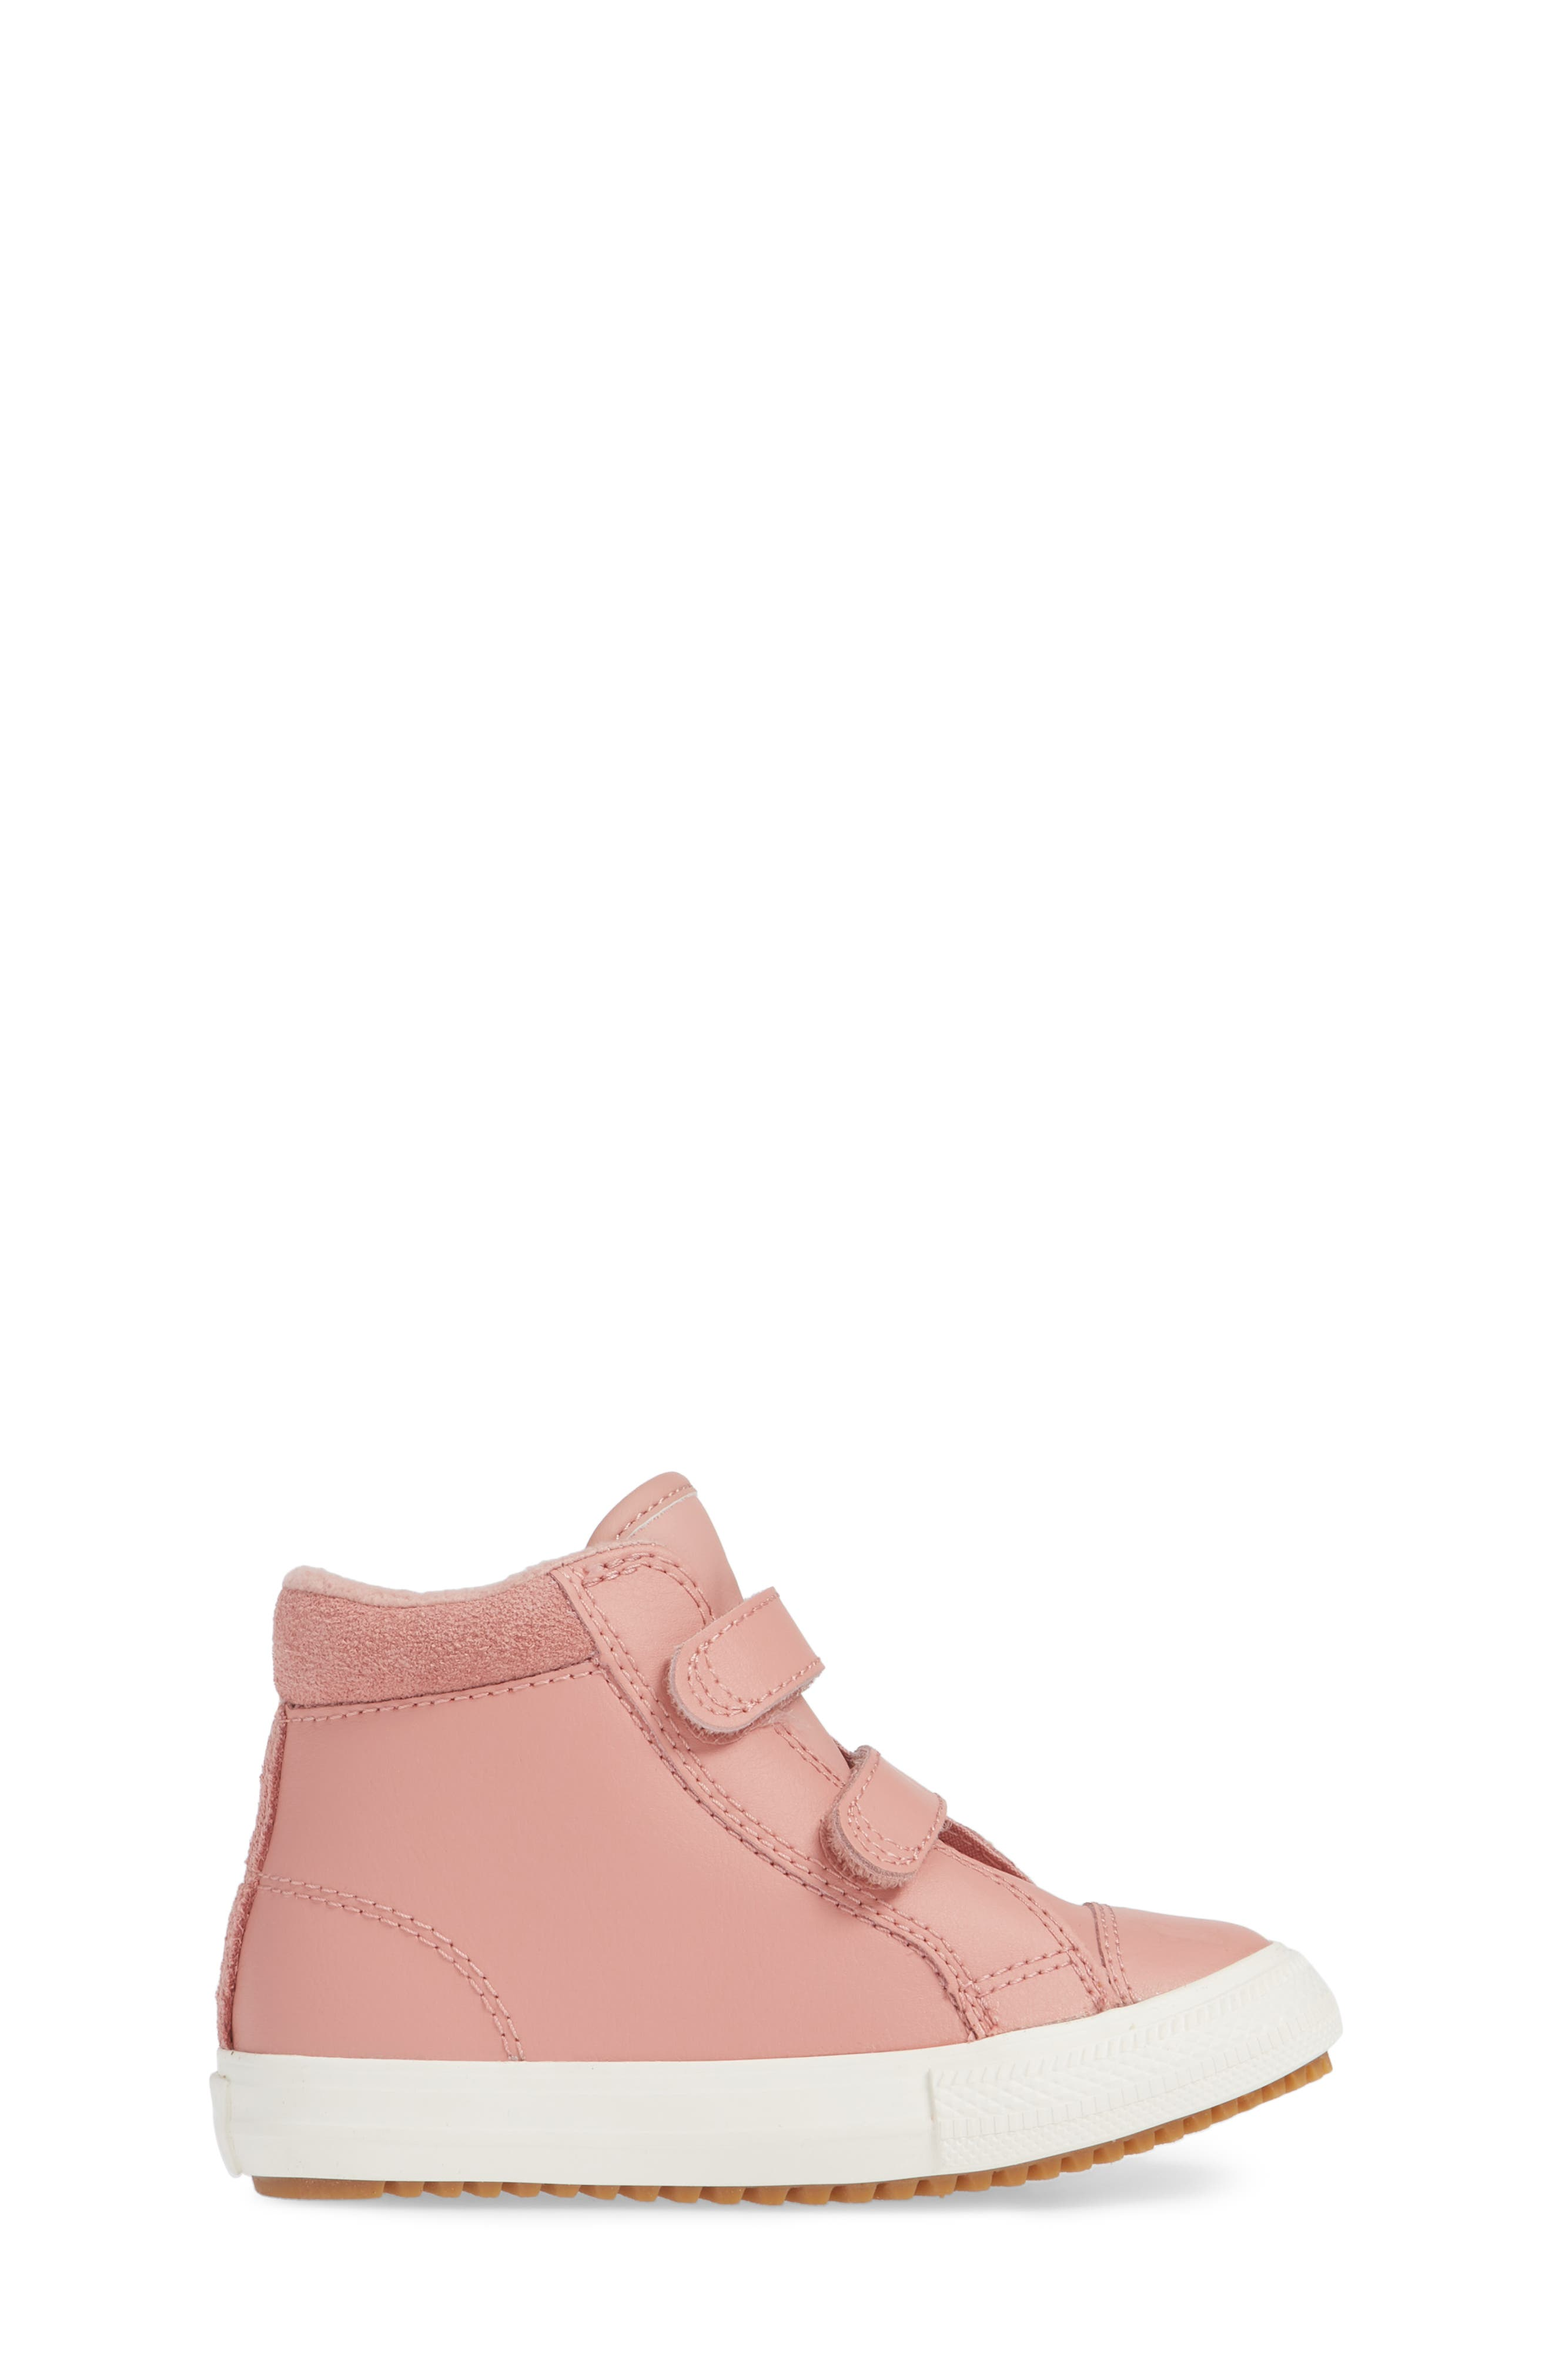 Chuck Taylor<sup>®</sup> All Star<sup>®</sup> 2V Leather High Top Sneaker,                             Alternate thumbnail 3, color,                             RUST PINK